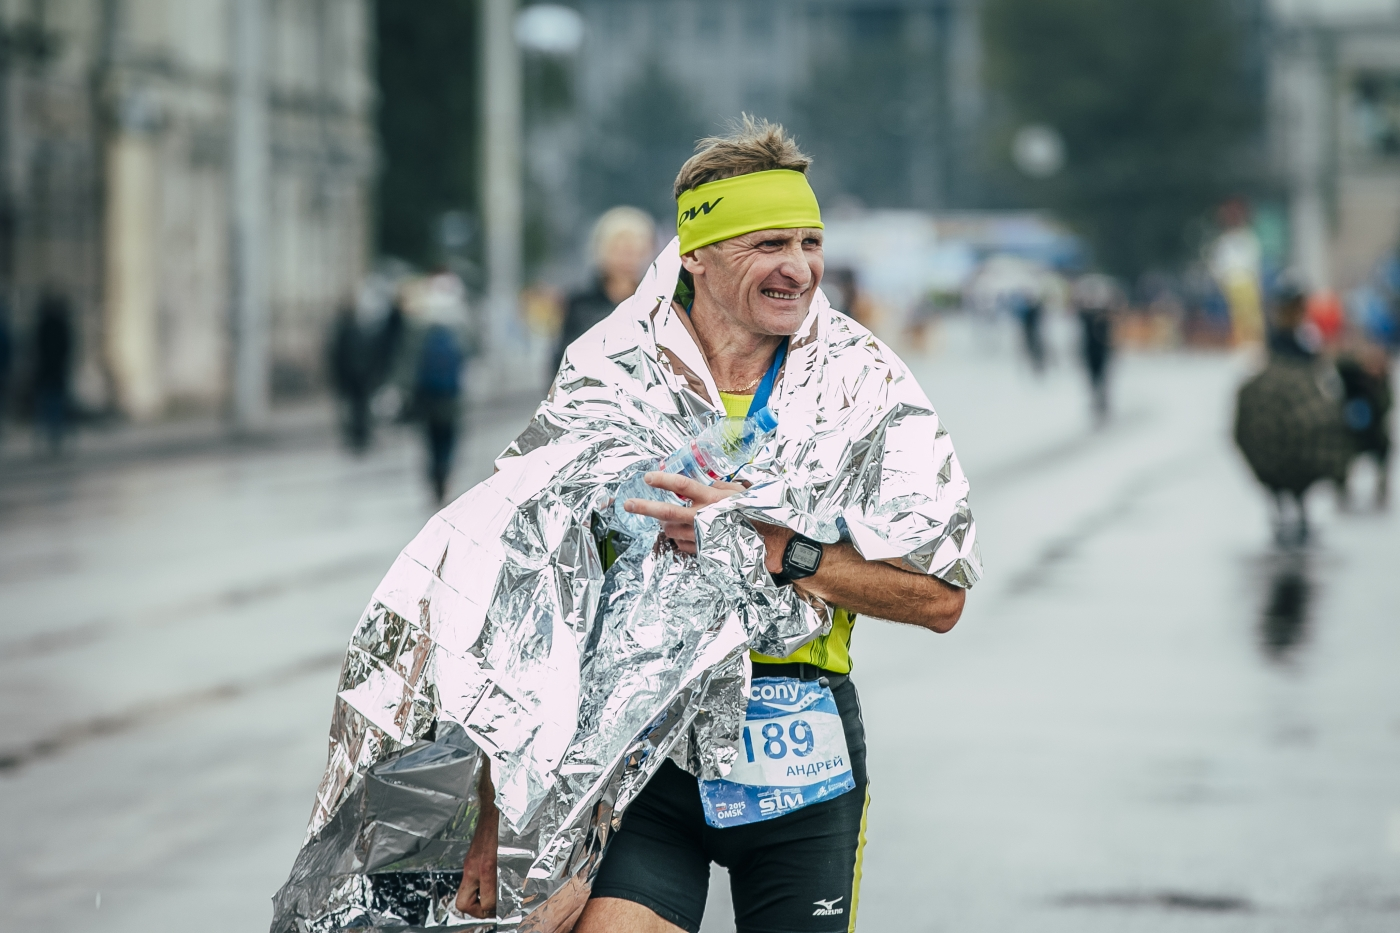 athlete runner middle-aged after the finish put on aluminum foil